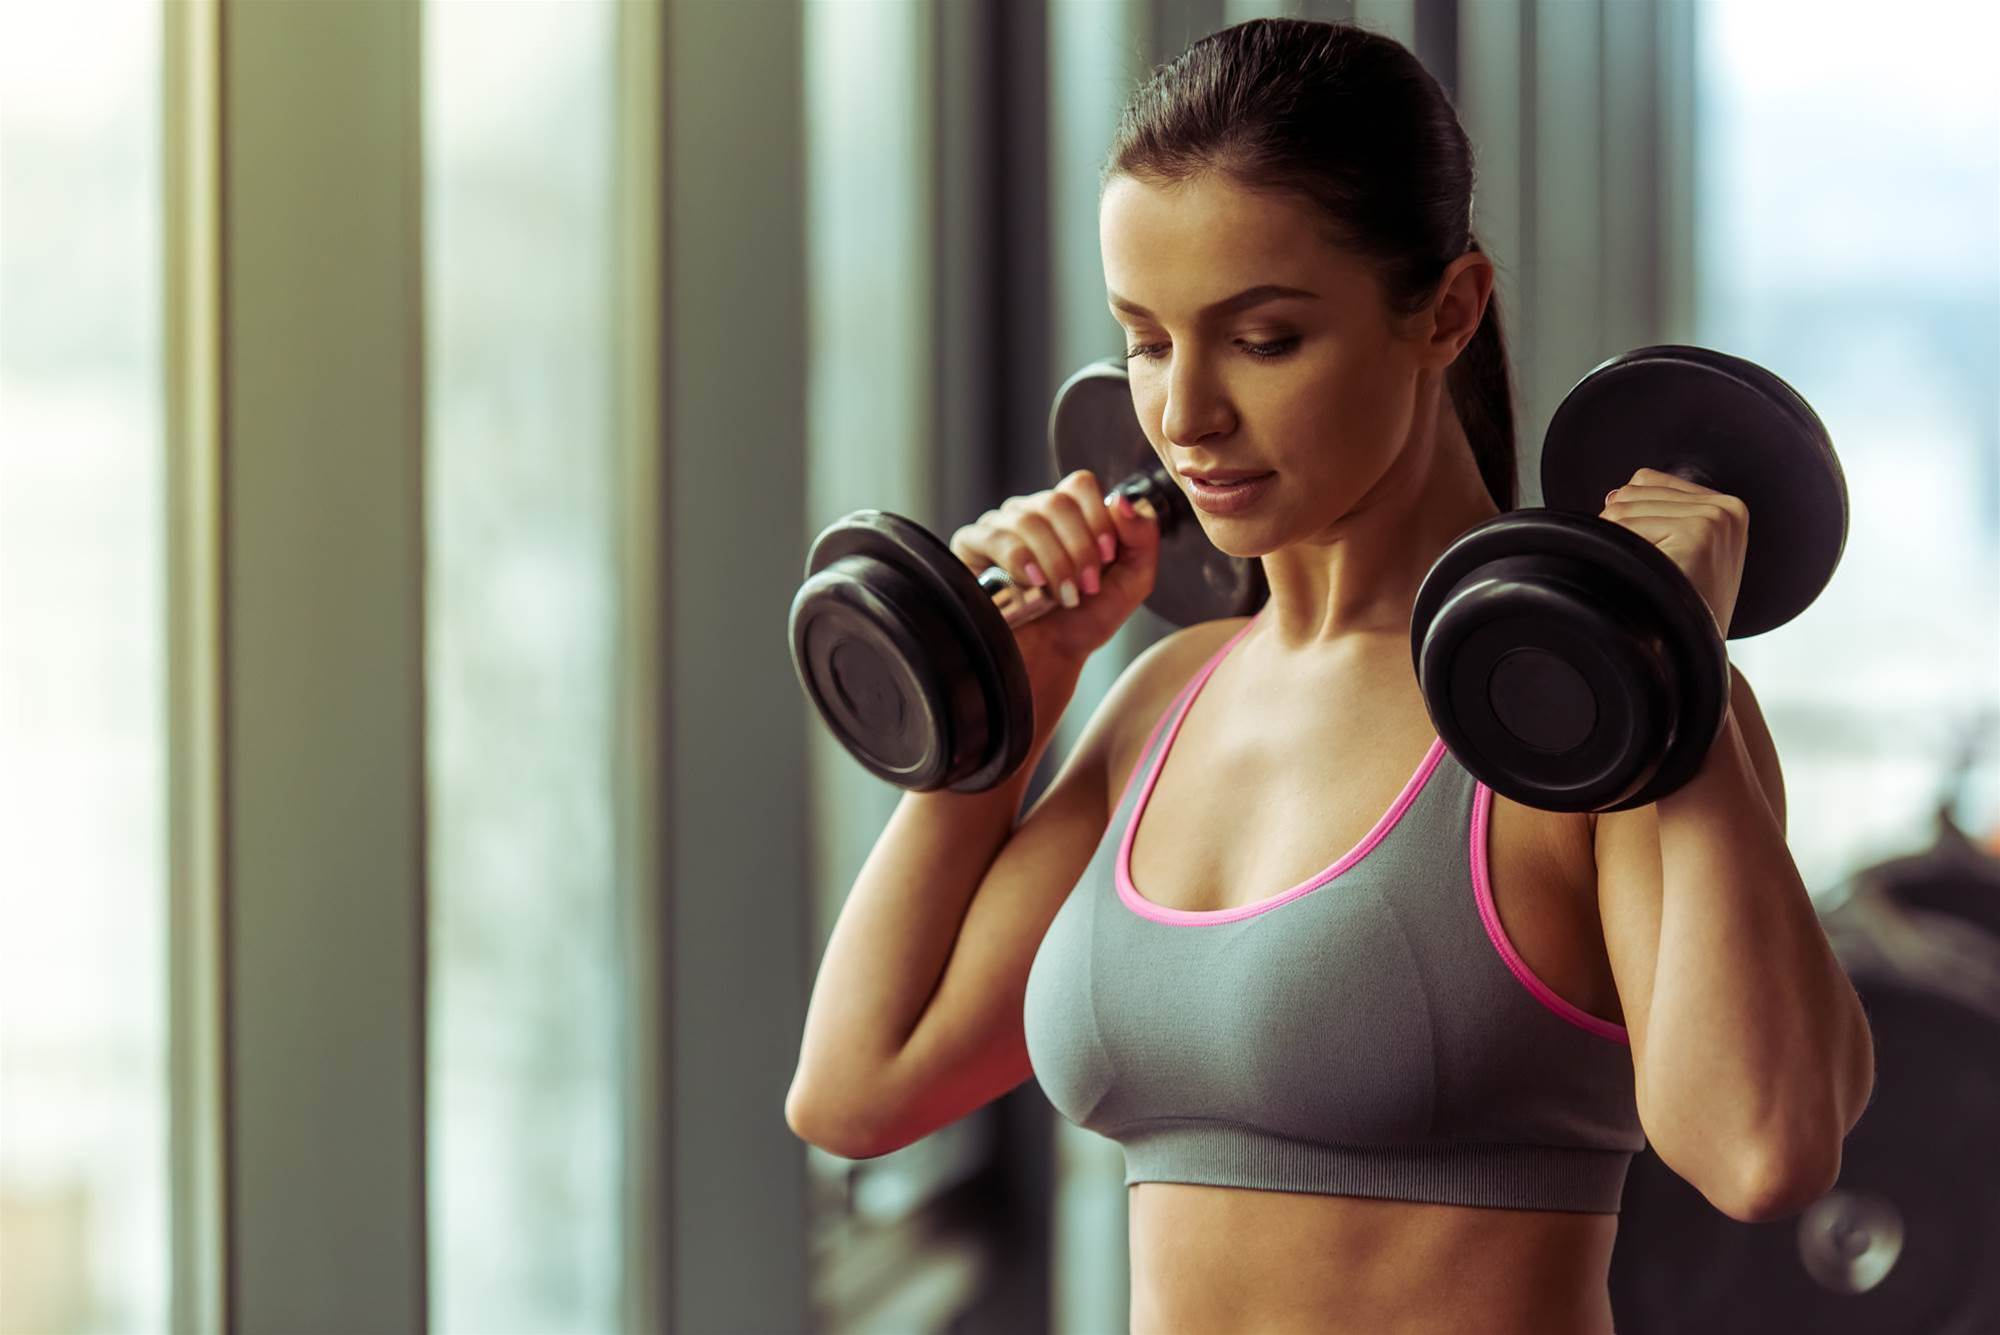 The best strength exercise for cyclists